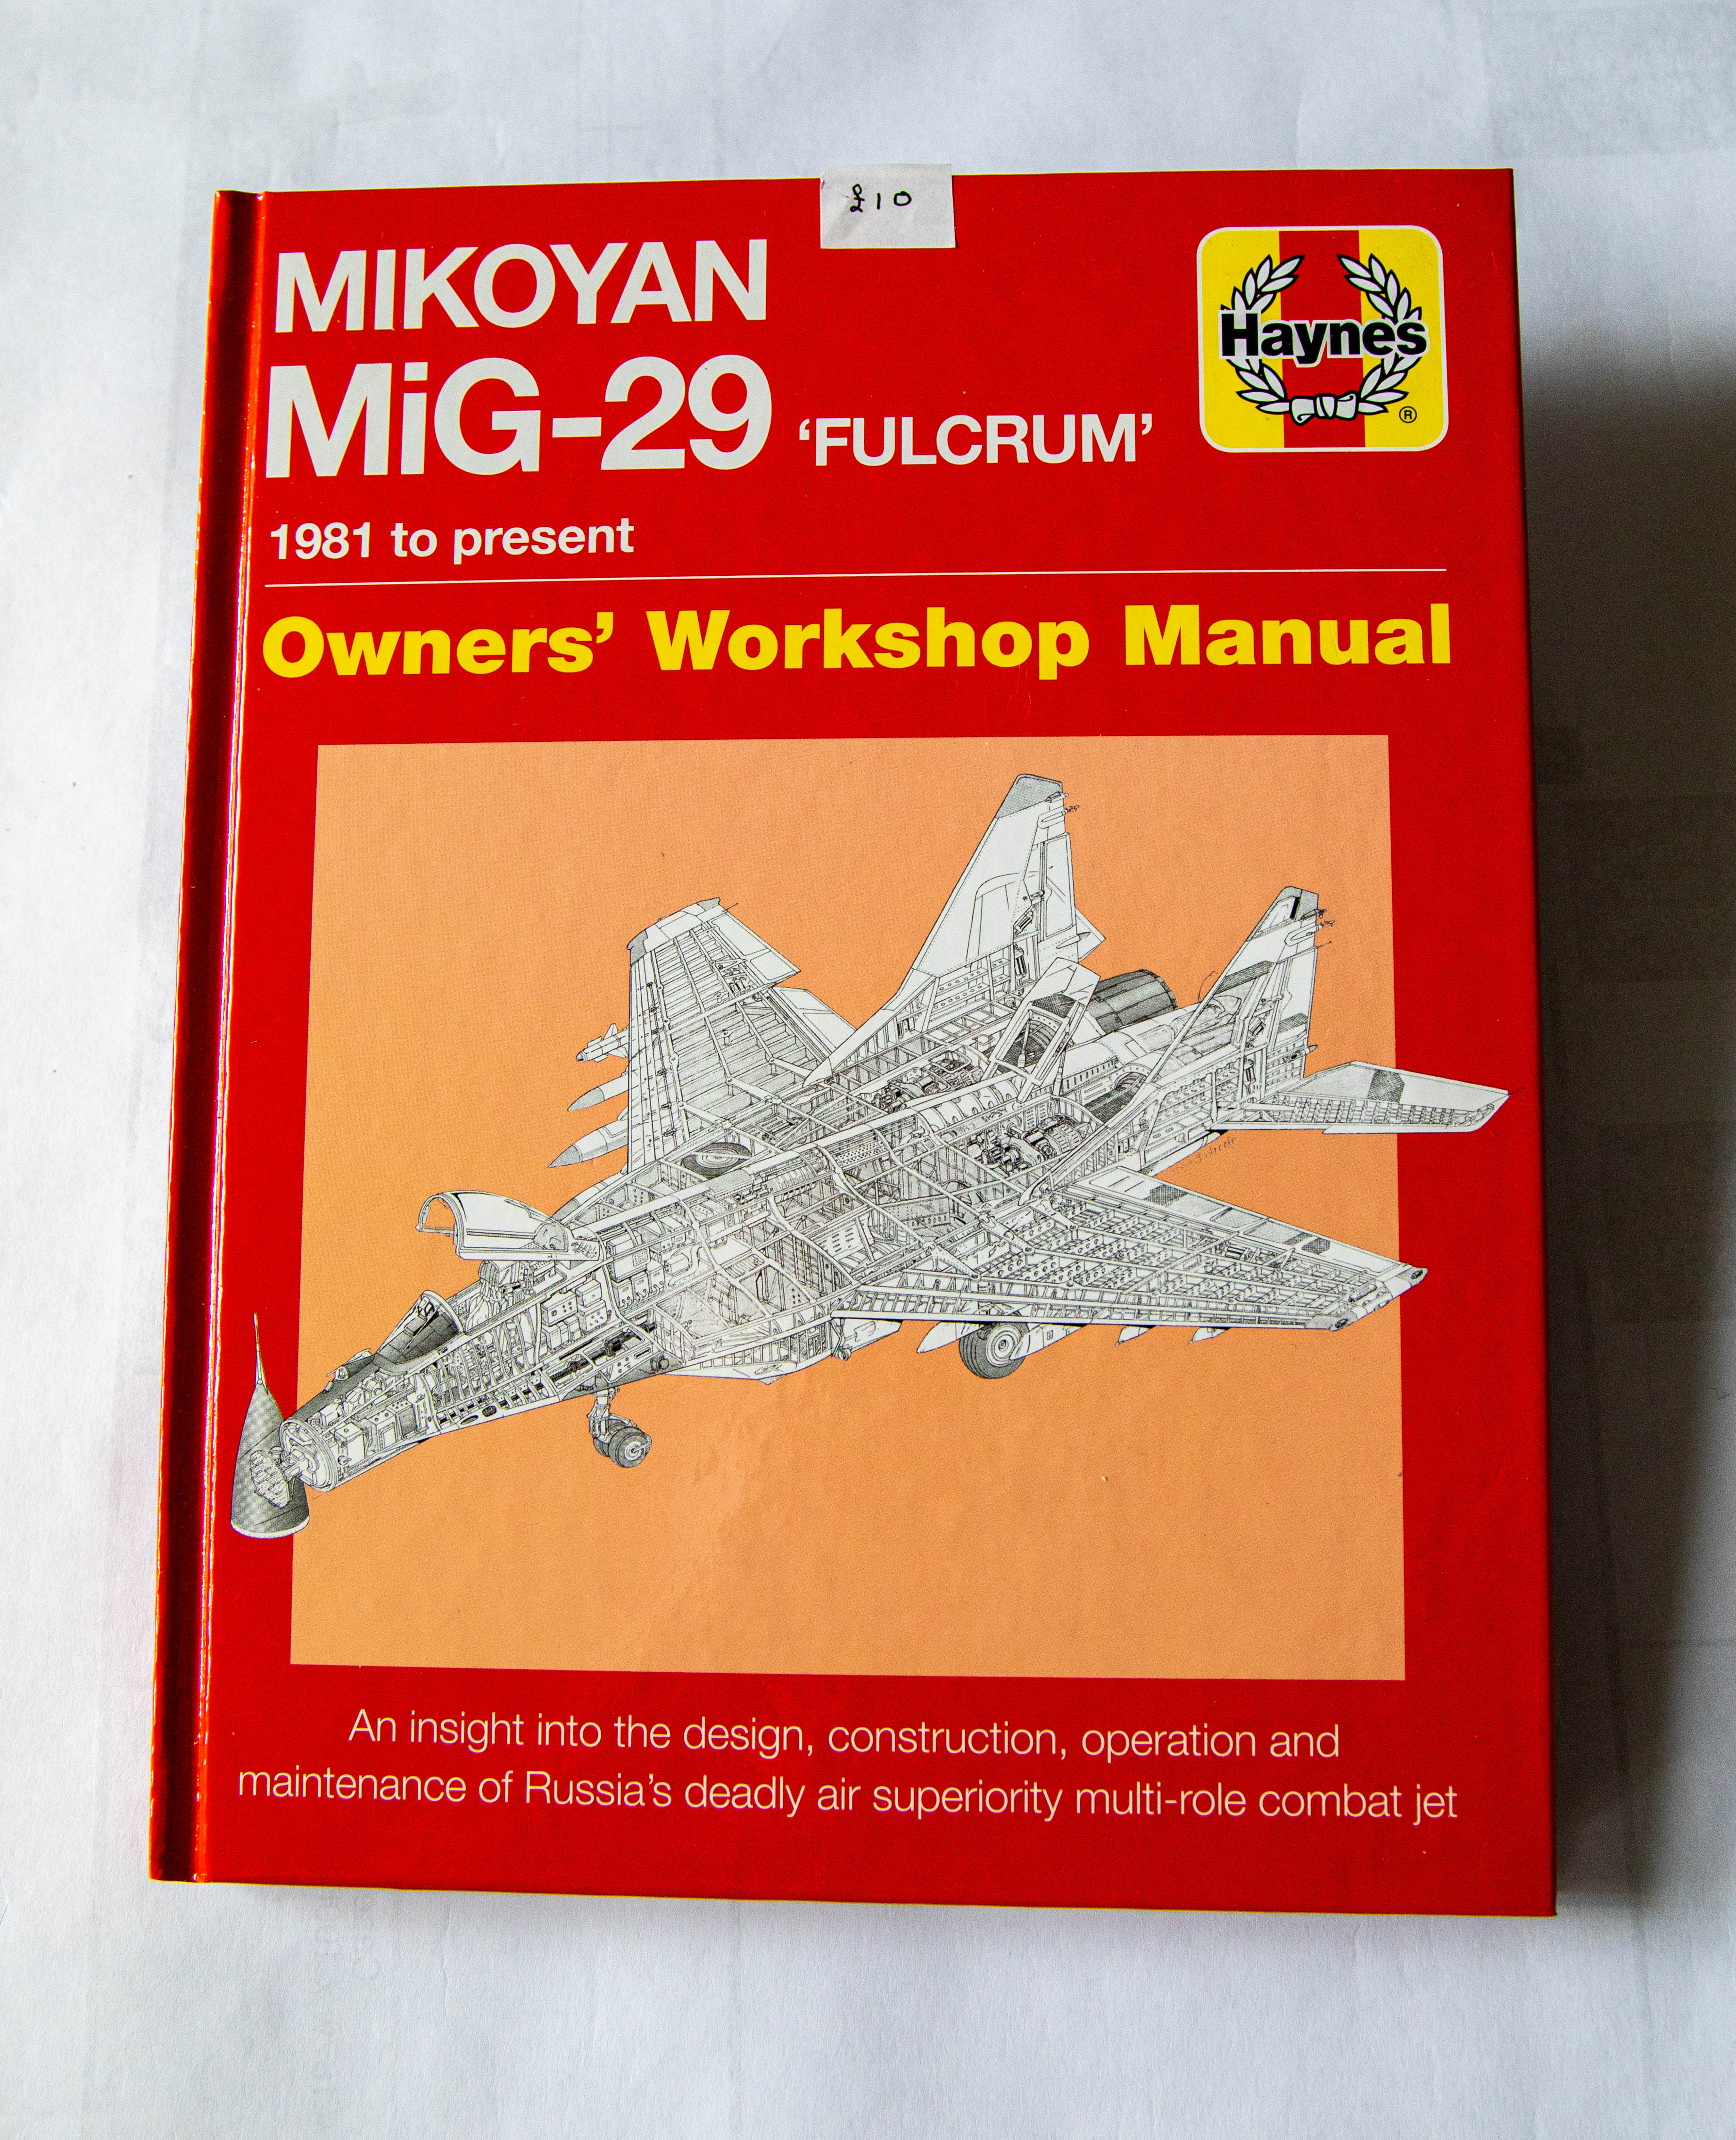 Mikoyan MiG-29 Fulcrum Owners Workshop Manual